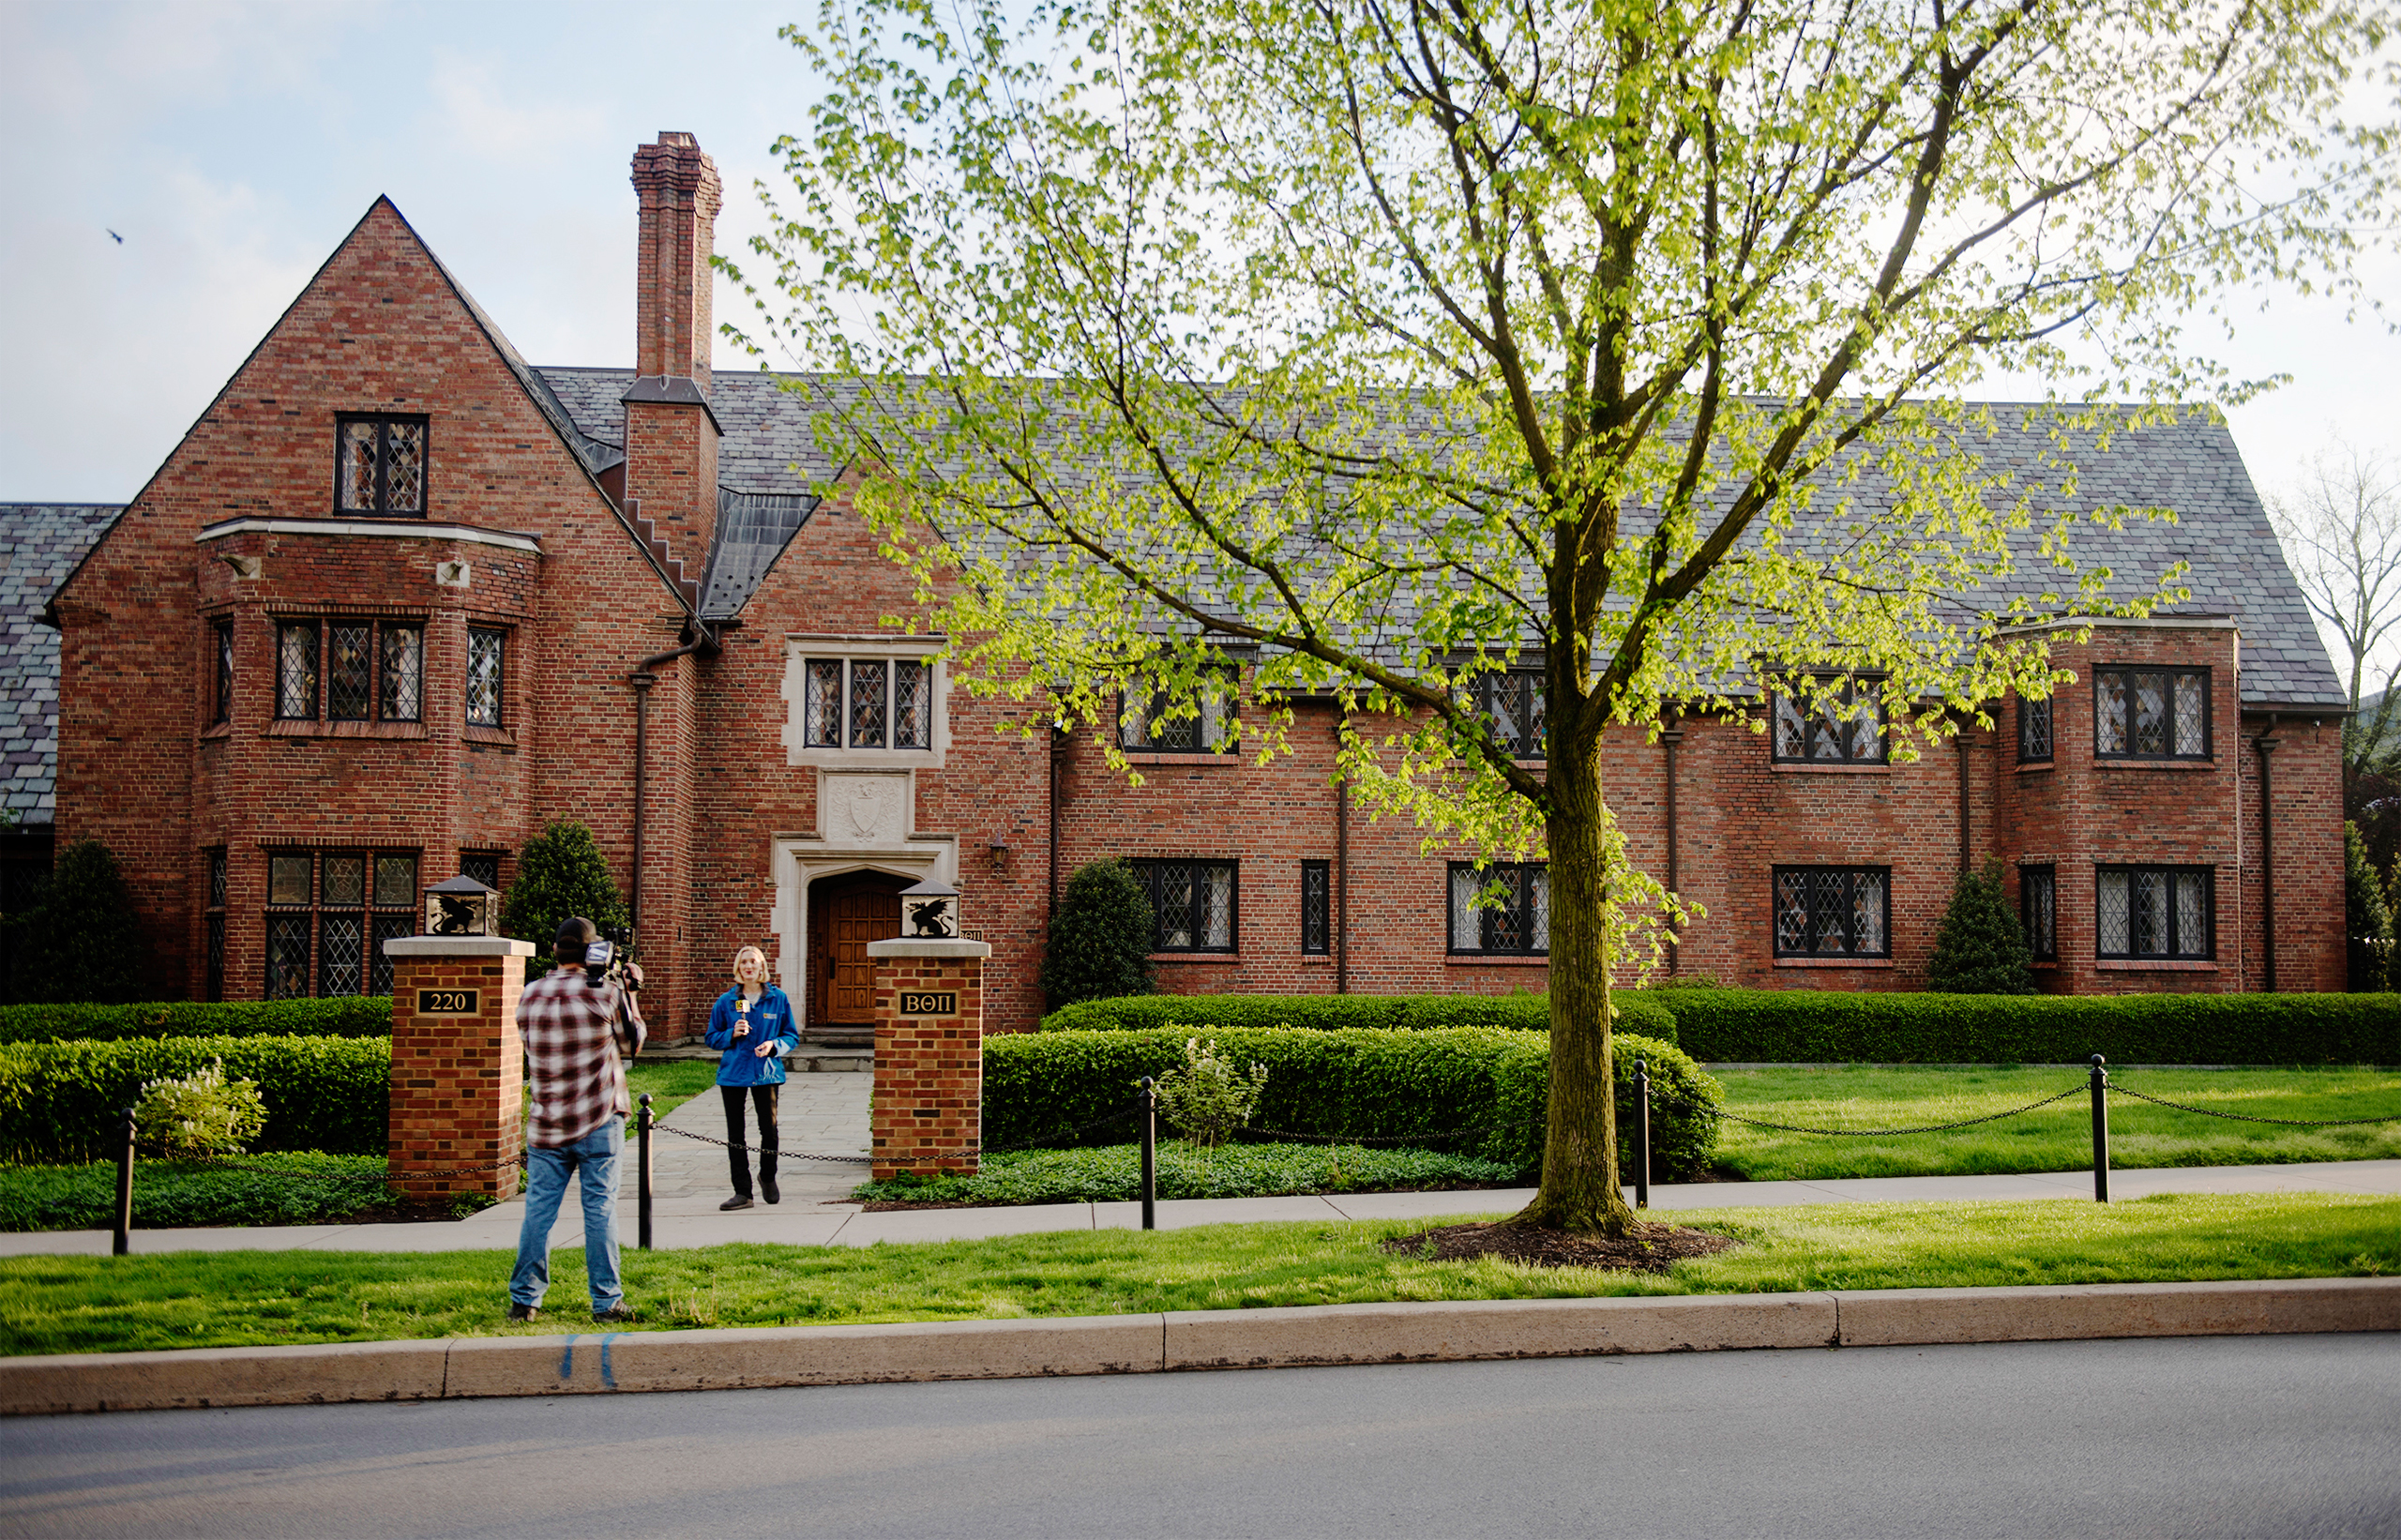 Reporters shoot a news standup outside the Penn State University Beta Theta Pi fraternity house on campus on May 5, 2017 in State College.